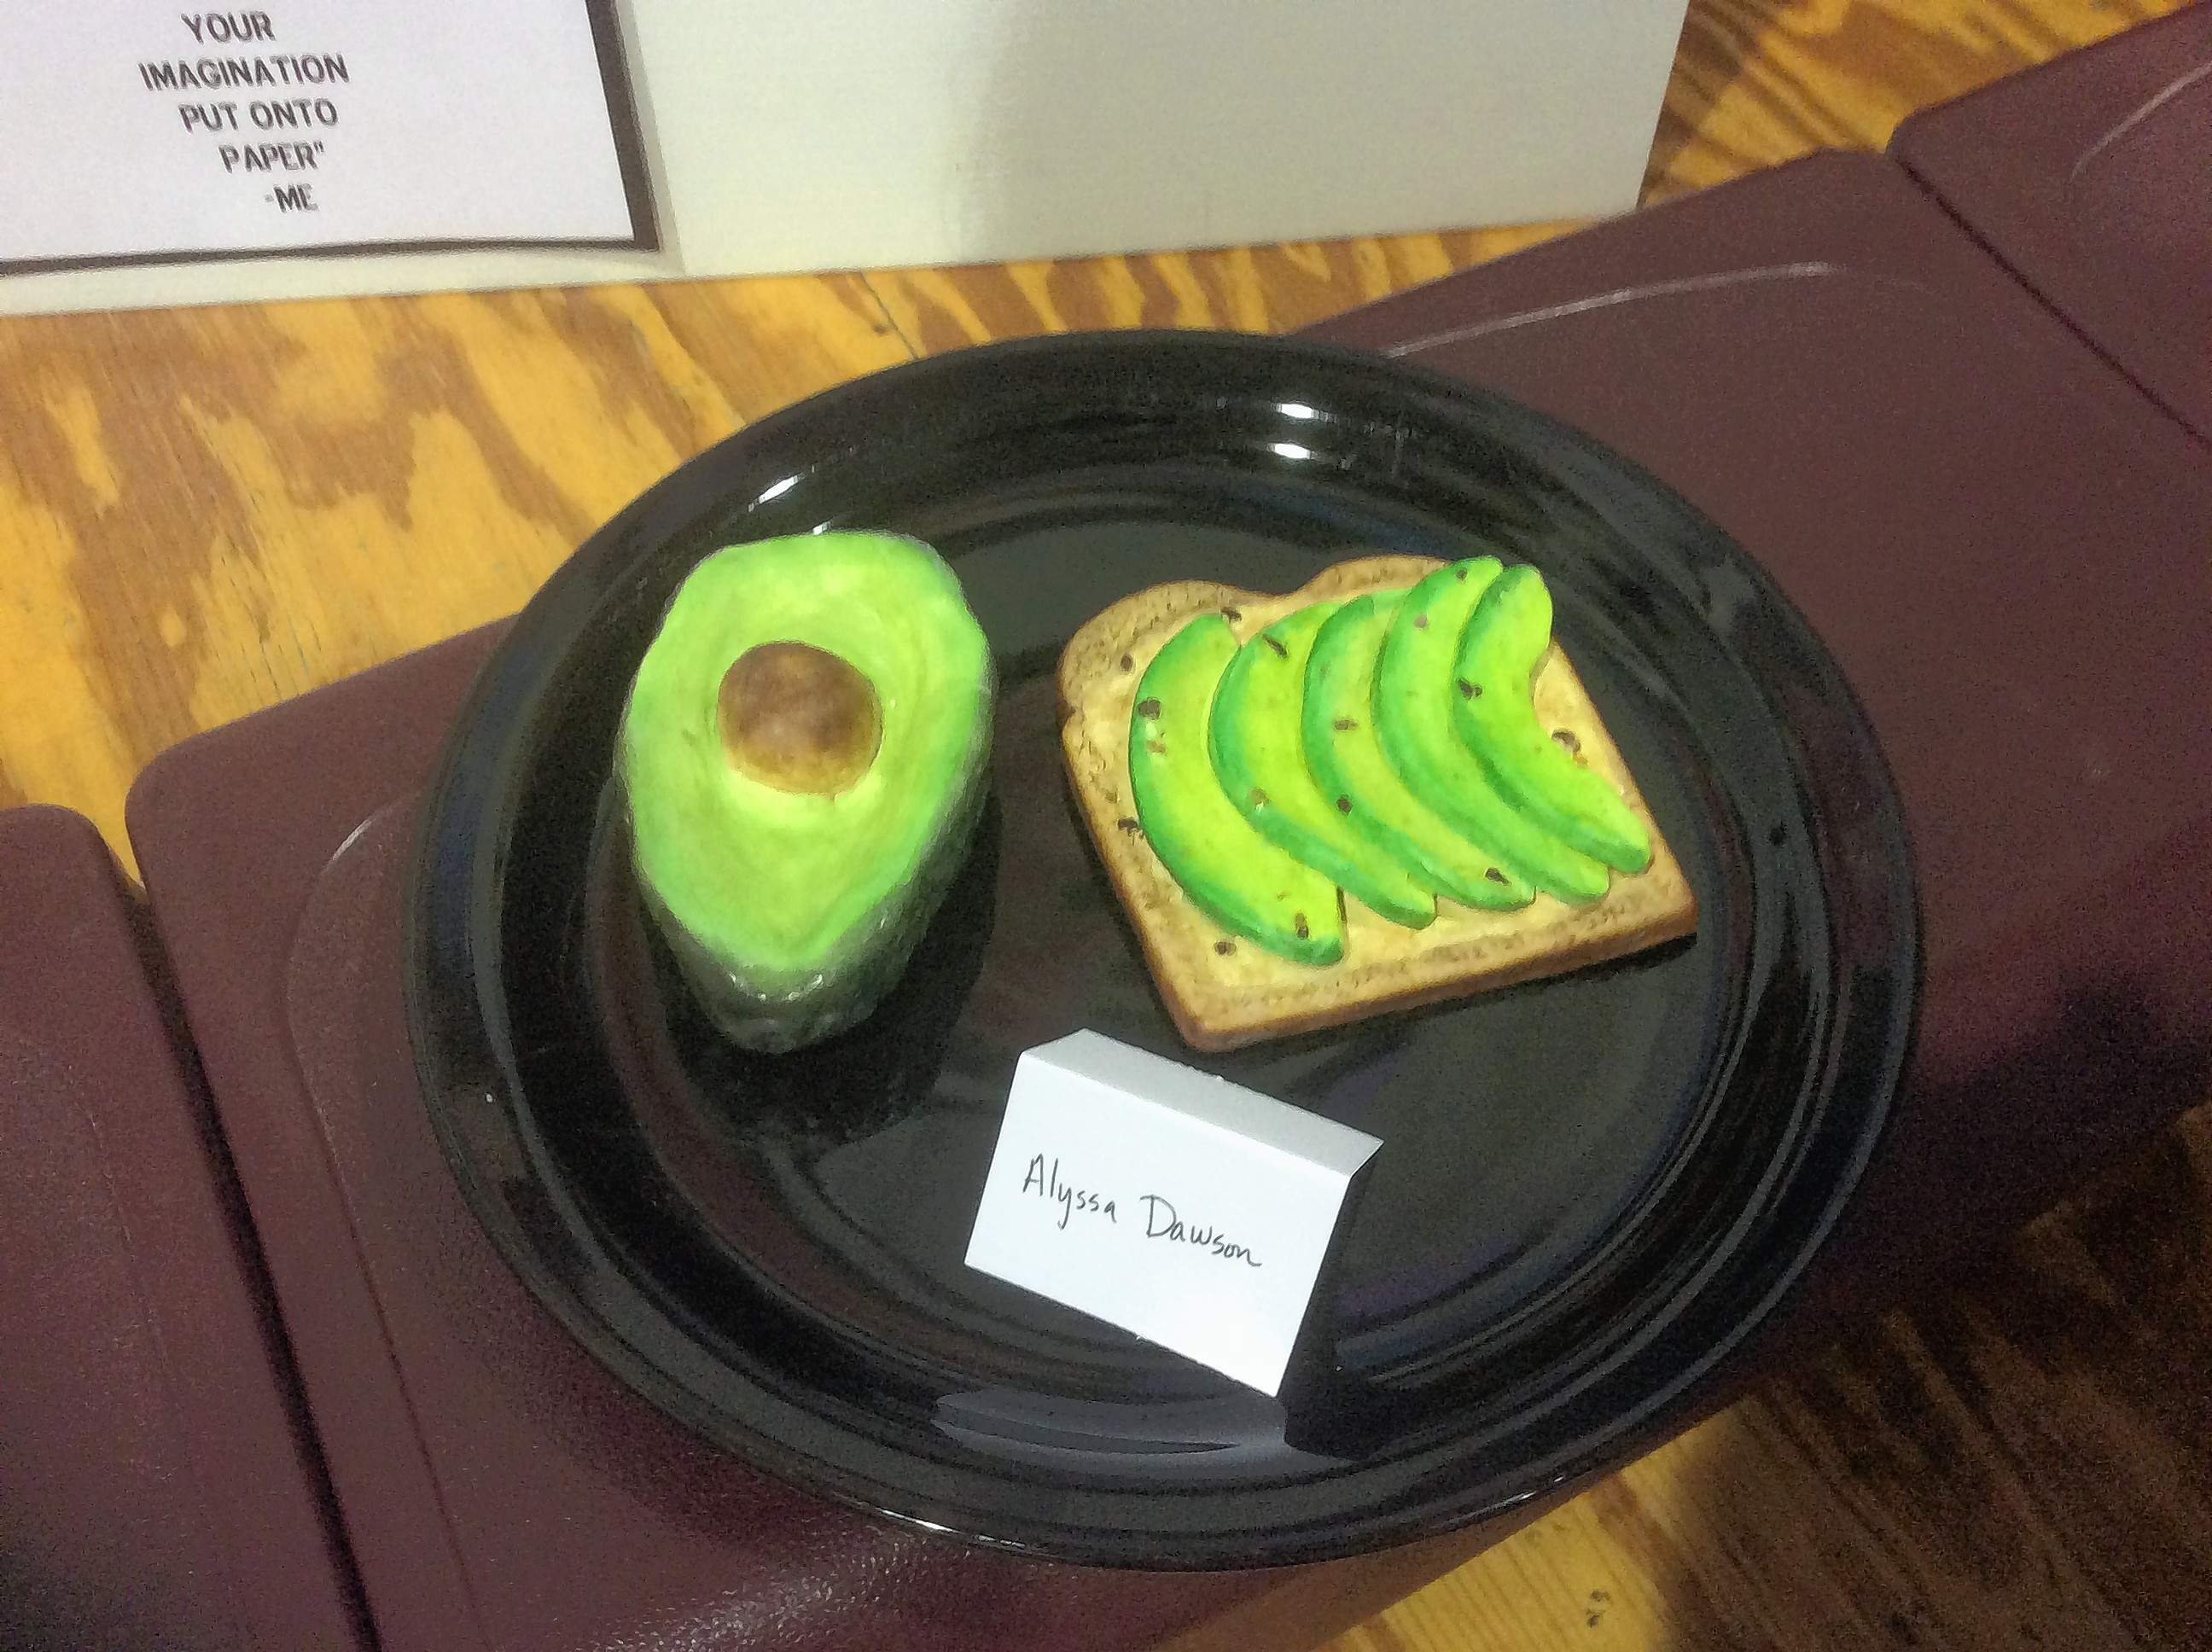 'Outstanding' artist Alyssa Dawson displays a ceramic replica of the wildly popular breakfast food 'Avocado Toast' at the K-8 Art Show April 23 in the Benton Middle School Gym and Commons.